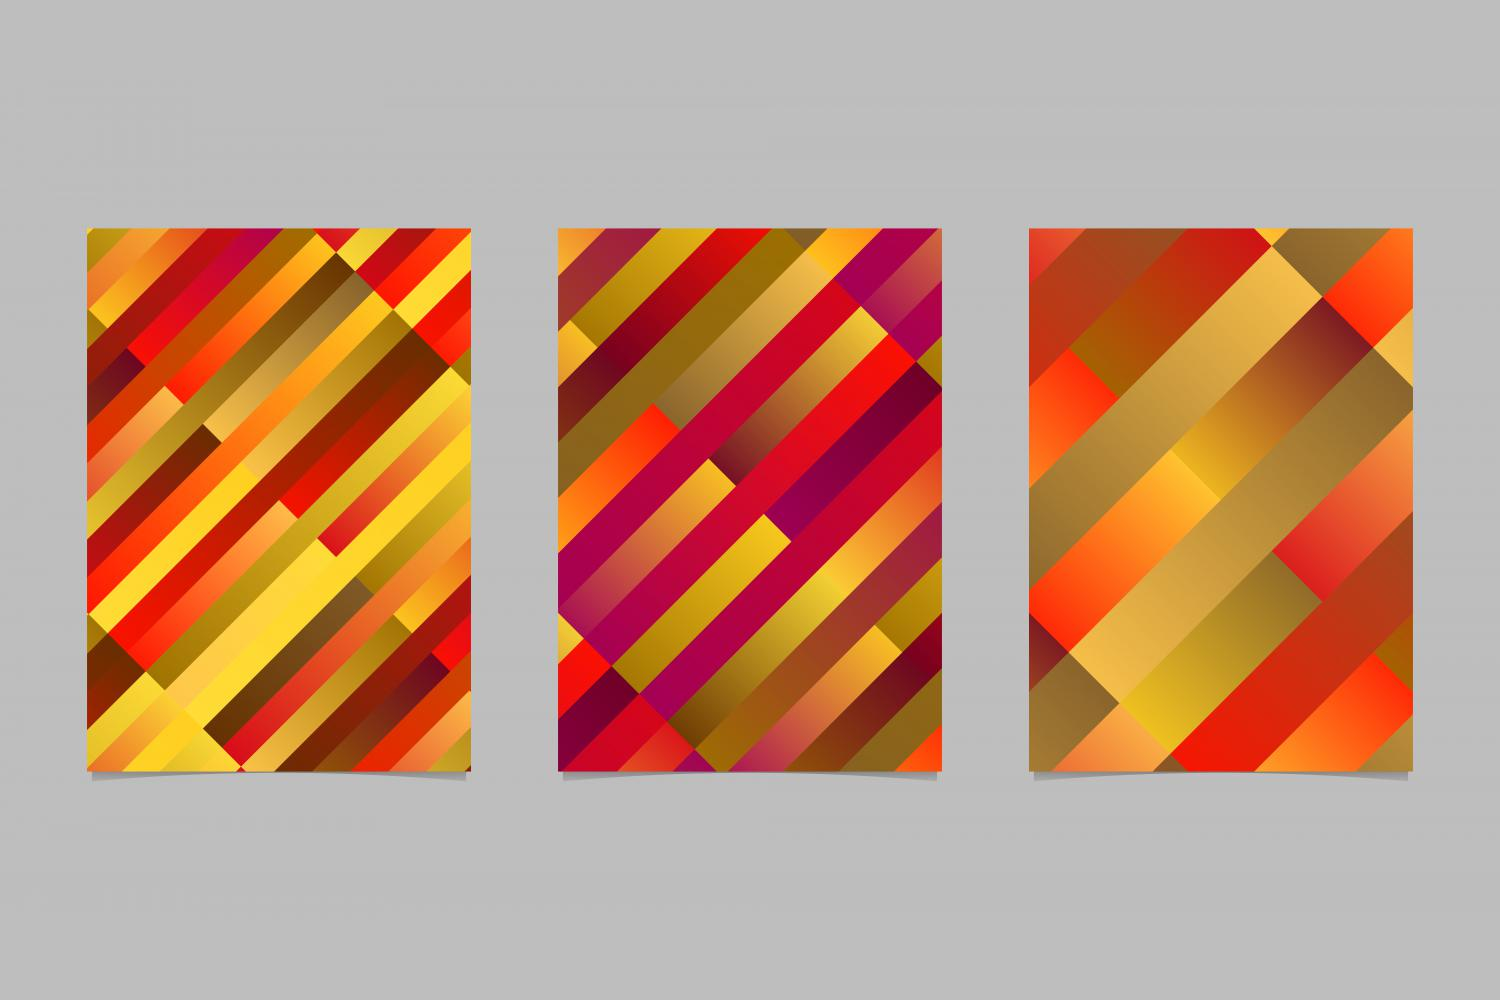 Download Free 3 Gradient Rectangle Page Backgrounds Graphic By Davidzydd for Cricut Explore, Silhouette and other cutting machines.